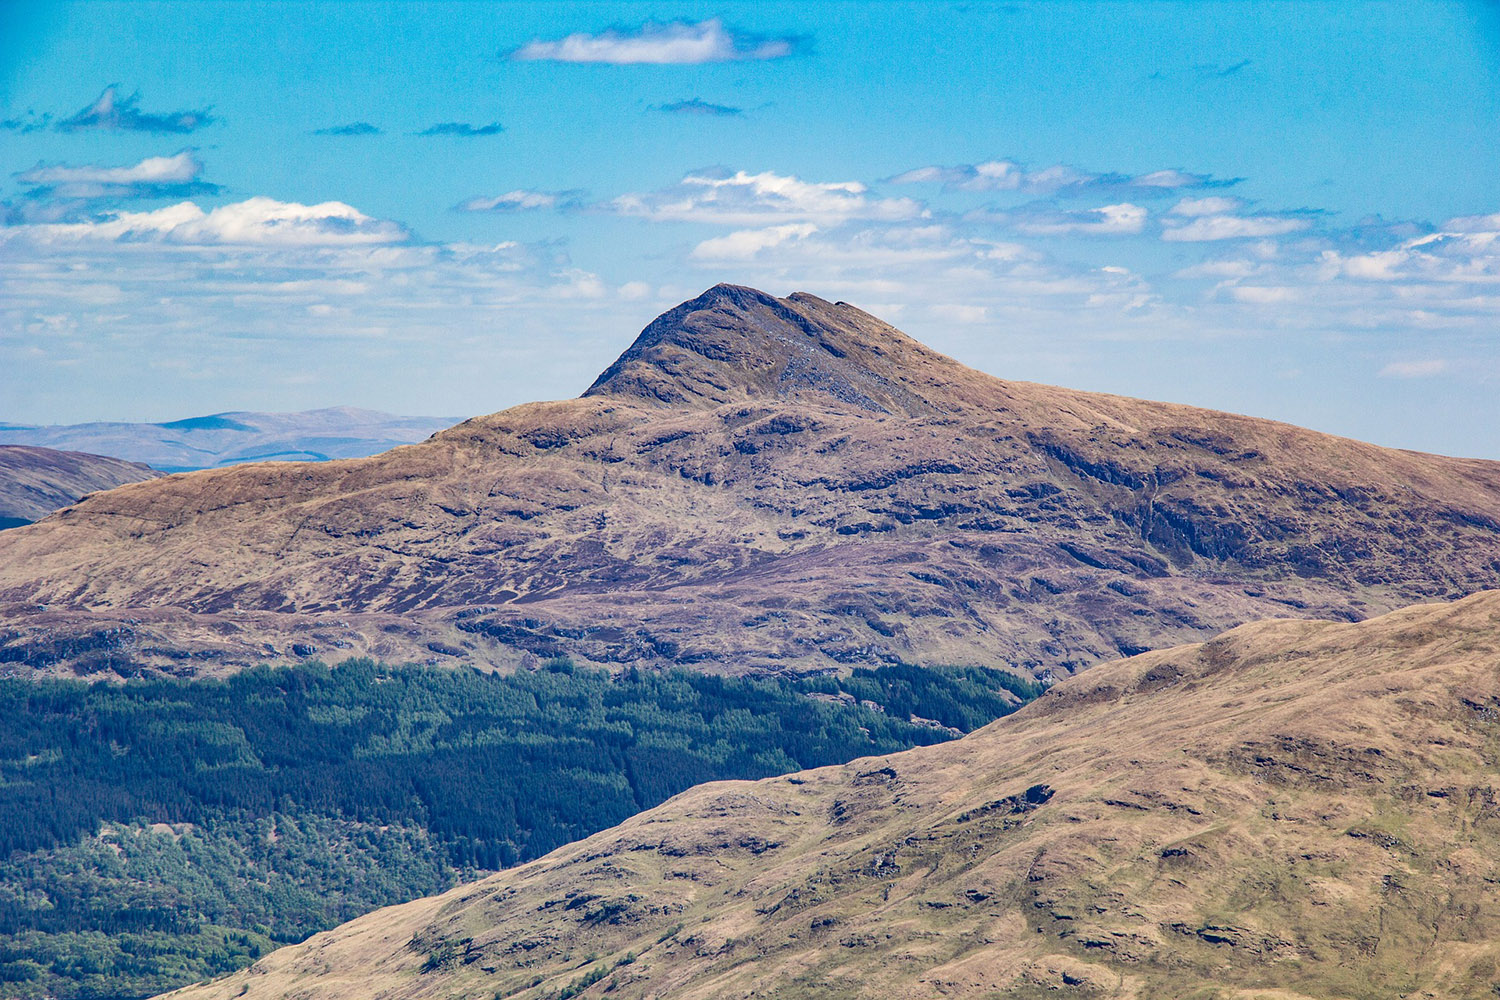 Ben Lomond is a munro with stunning surroundings that can be visited on a private tour of Scotland